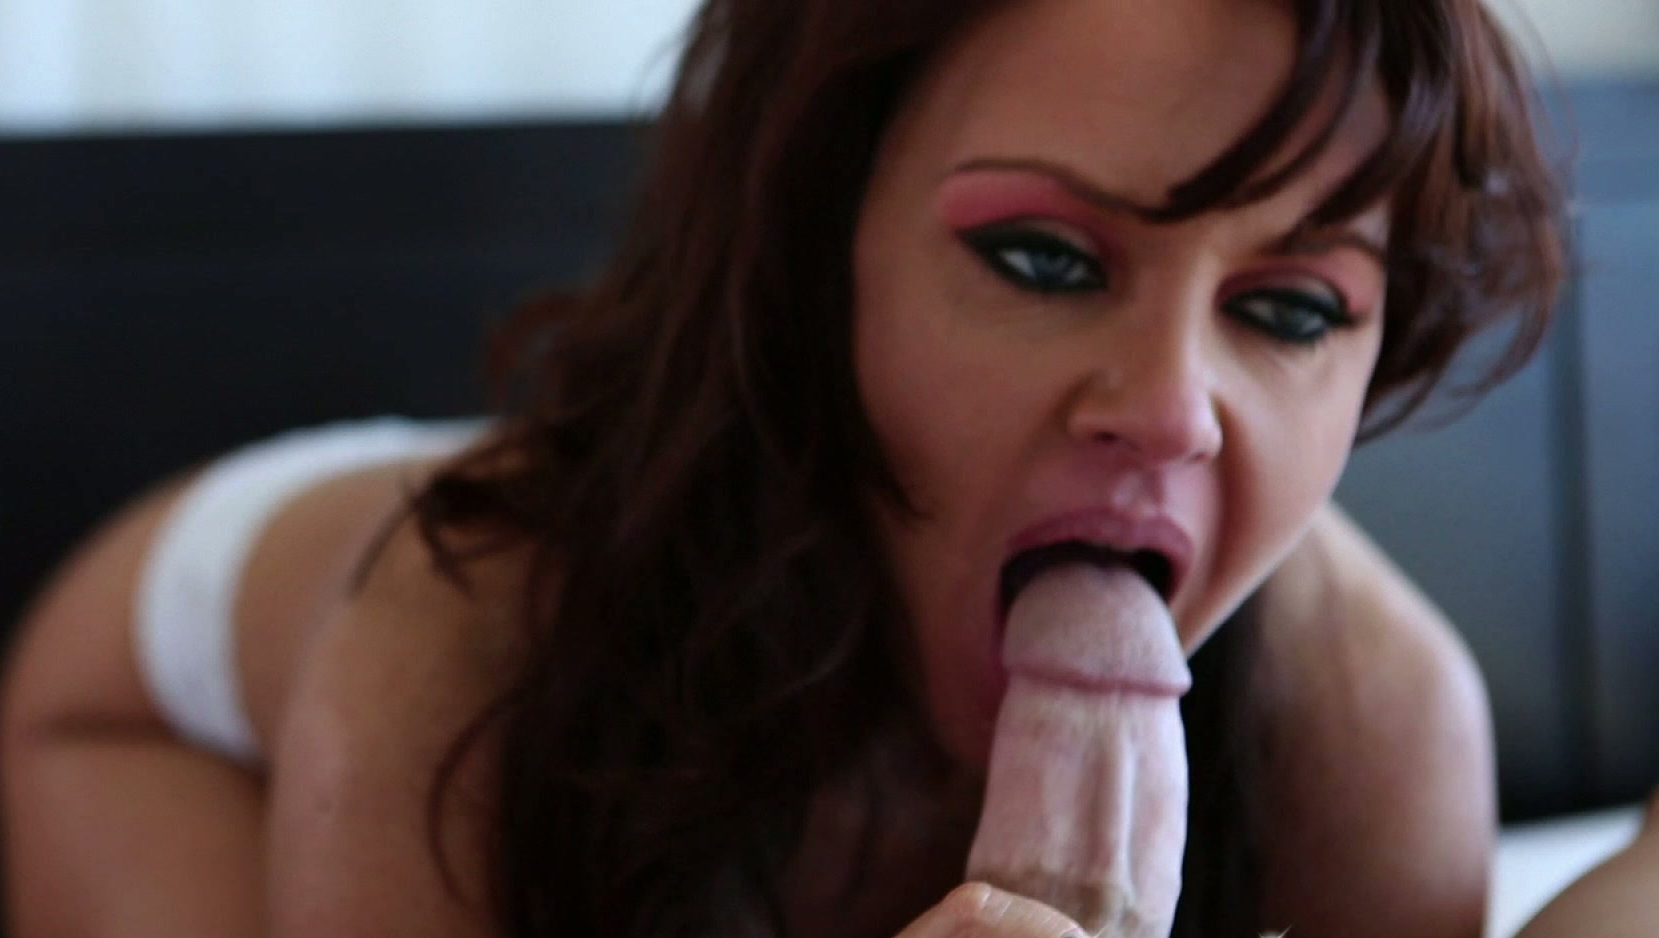 sex throating deep oral pictures